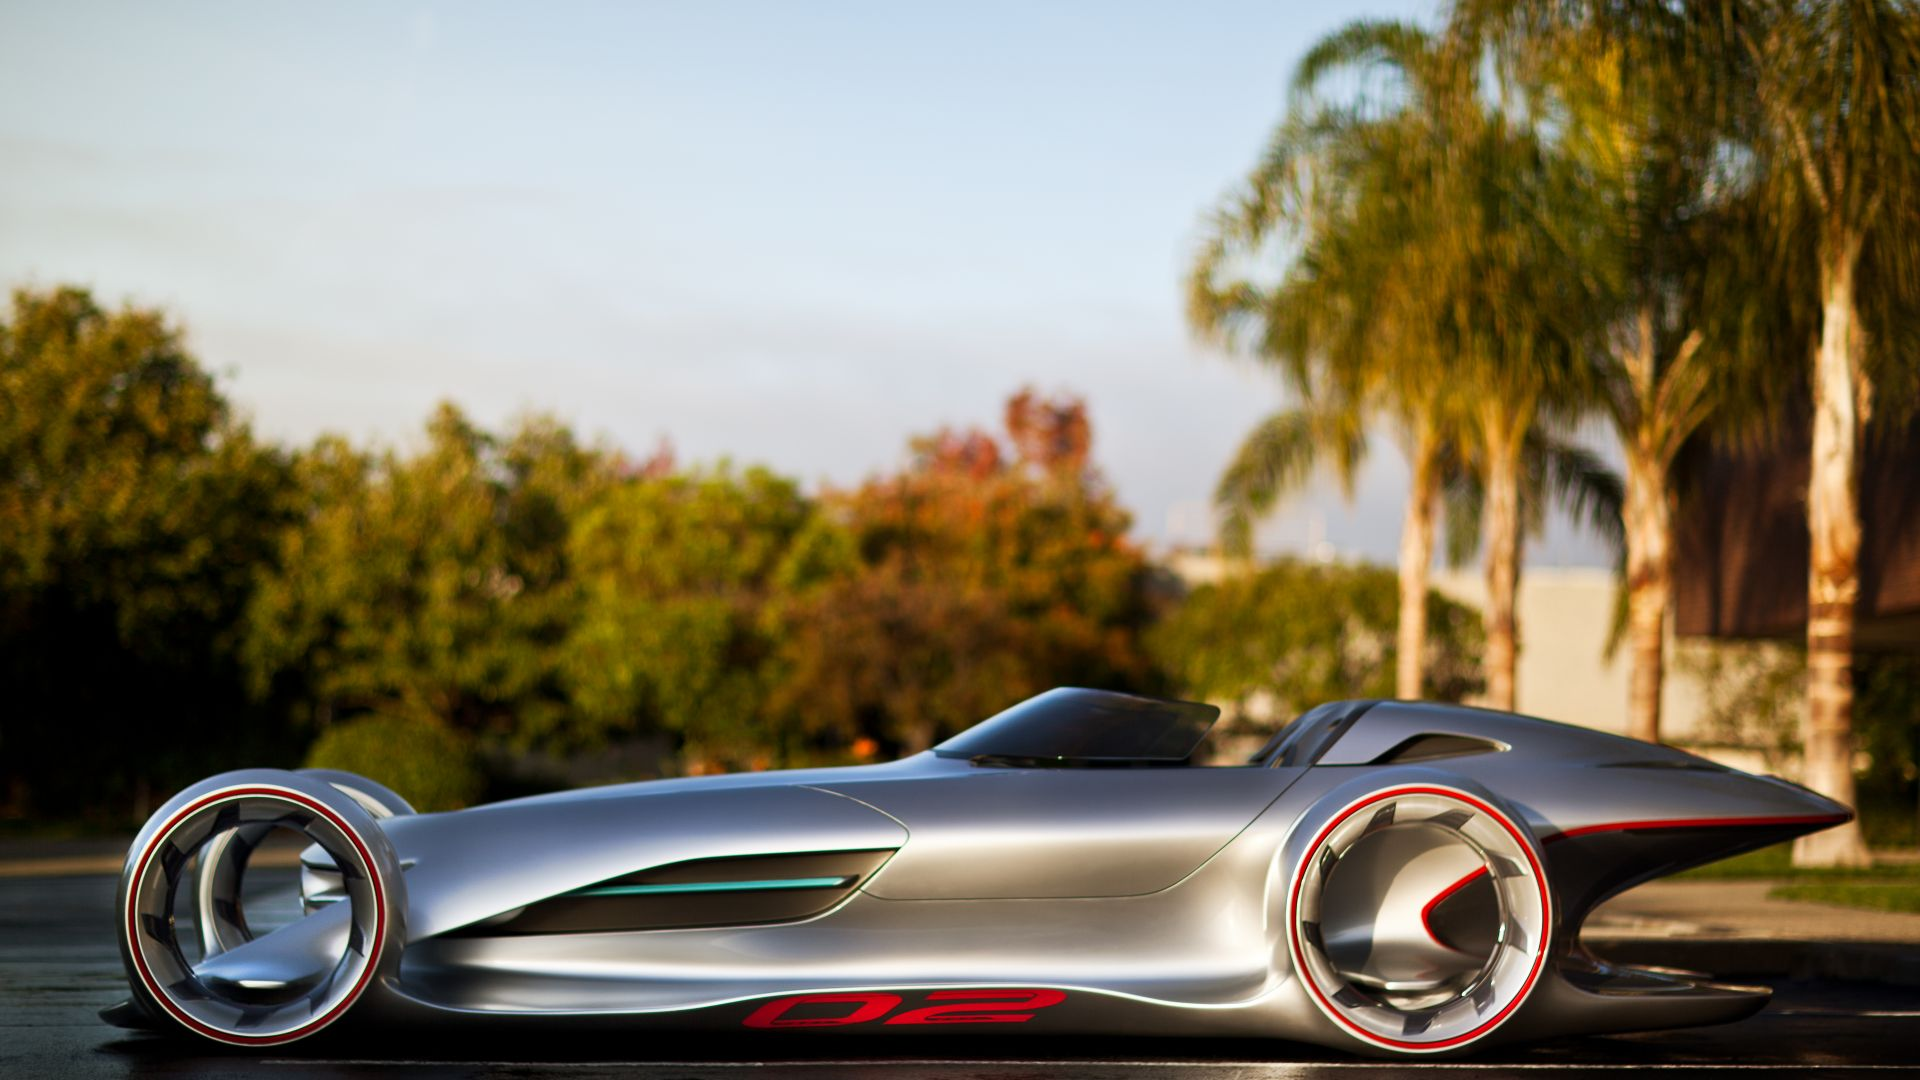 Mercedes-Benz Silver Arrow, future cars, 5k (horizontal)